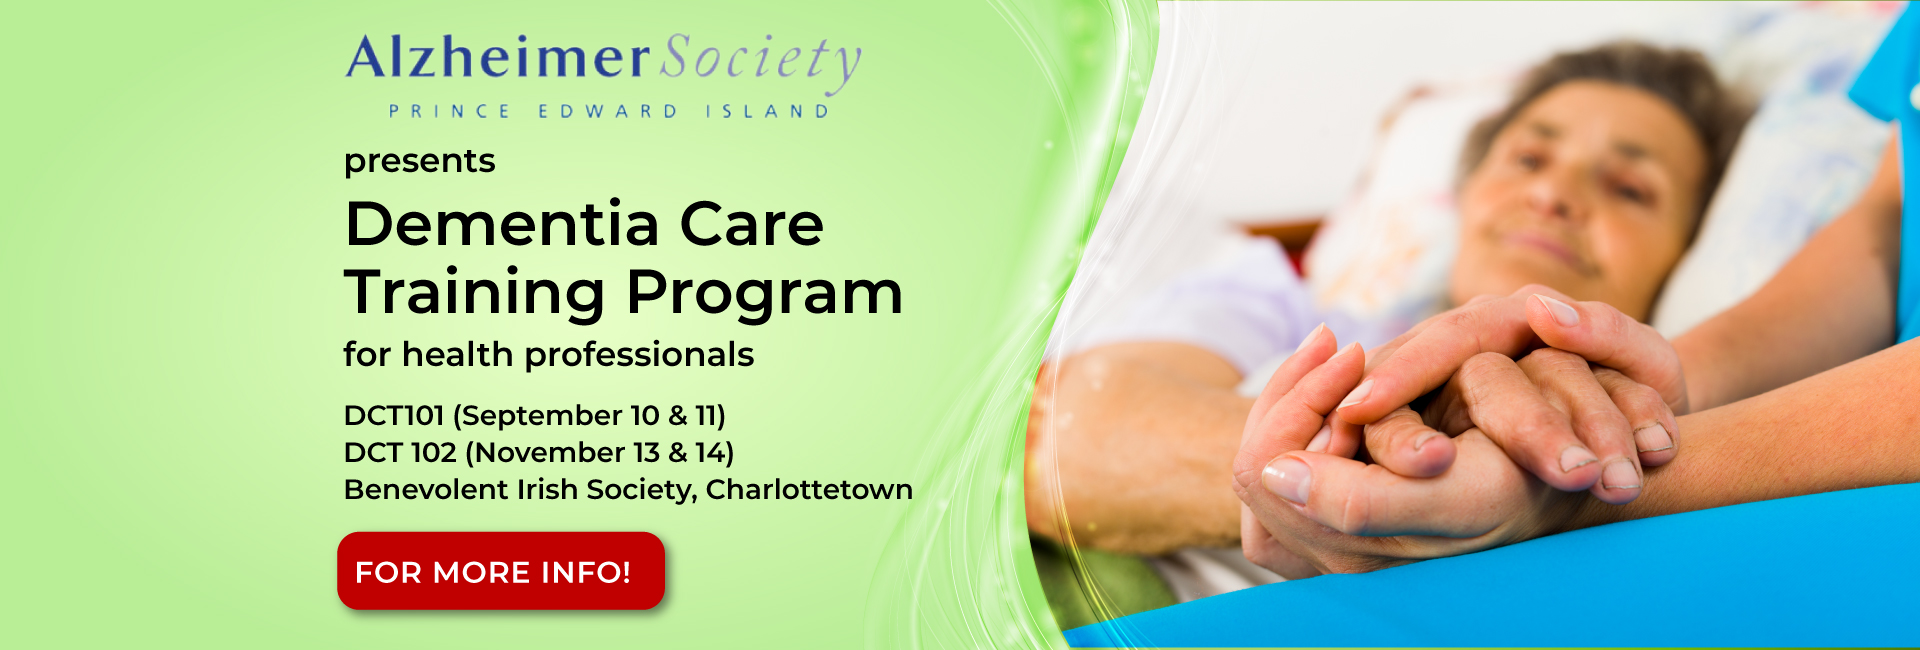 Dementia Care Training Program